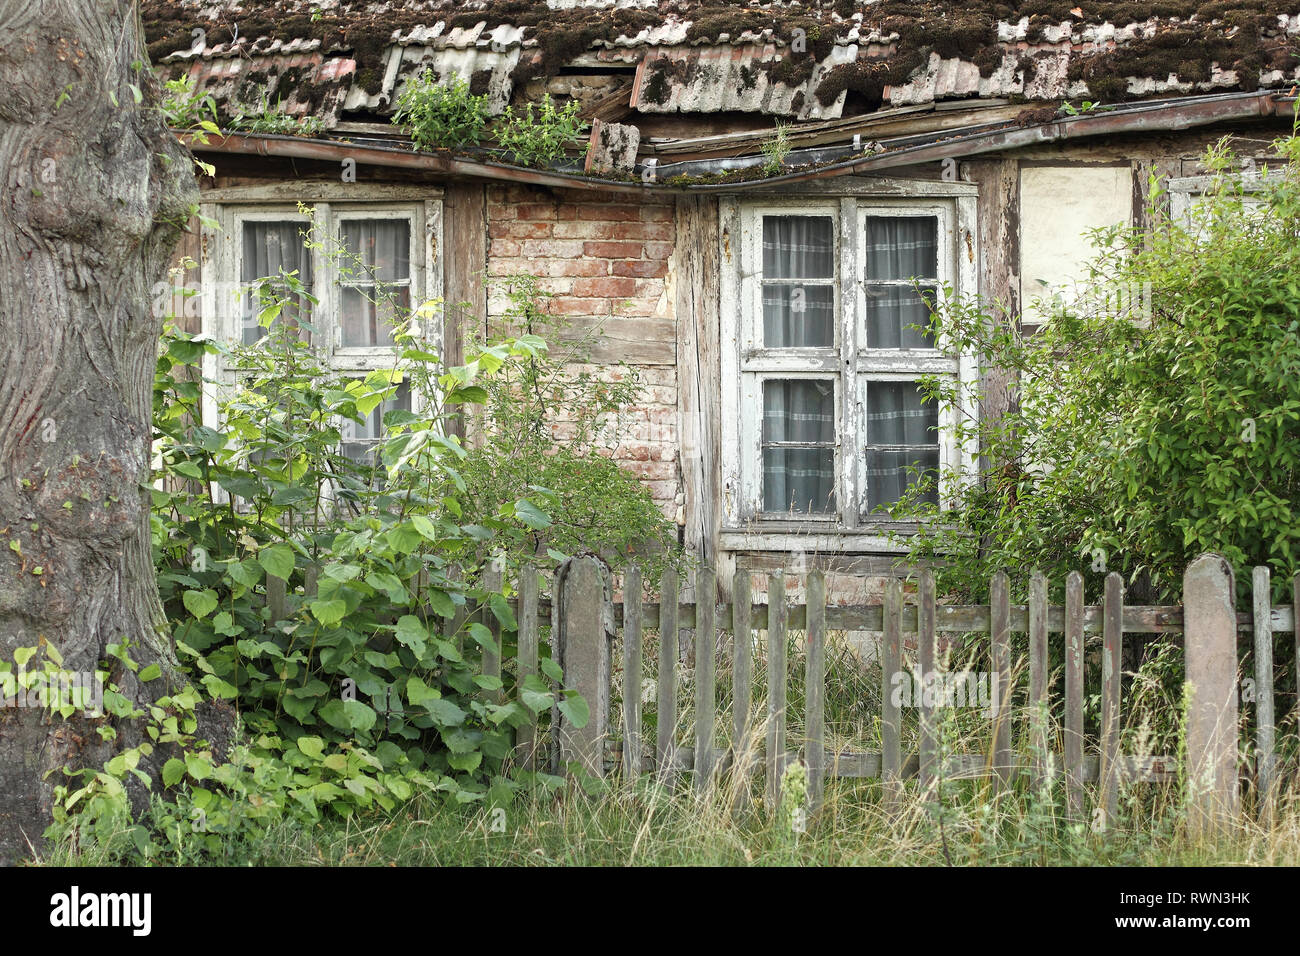 Dilapidated half-timbered house in the Uckermark - Stock Image